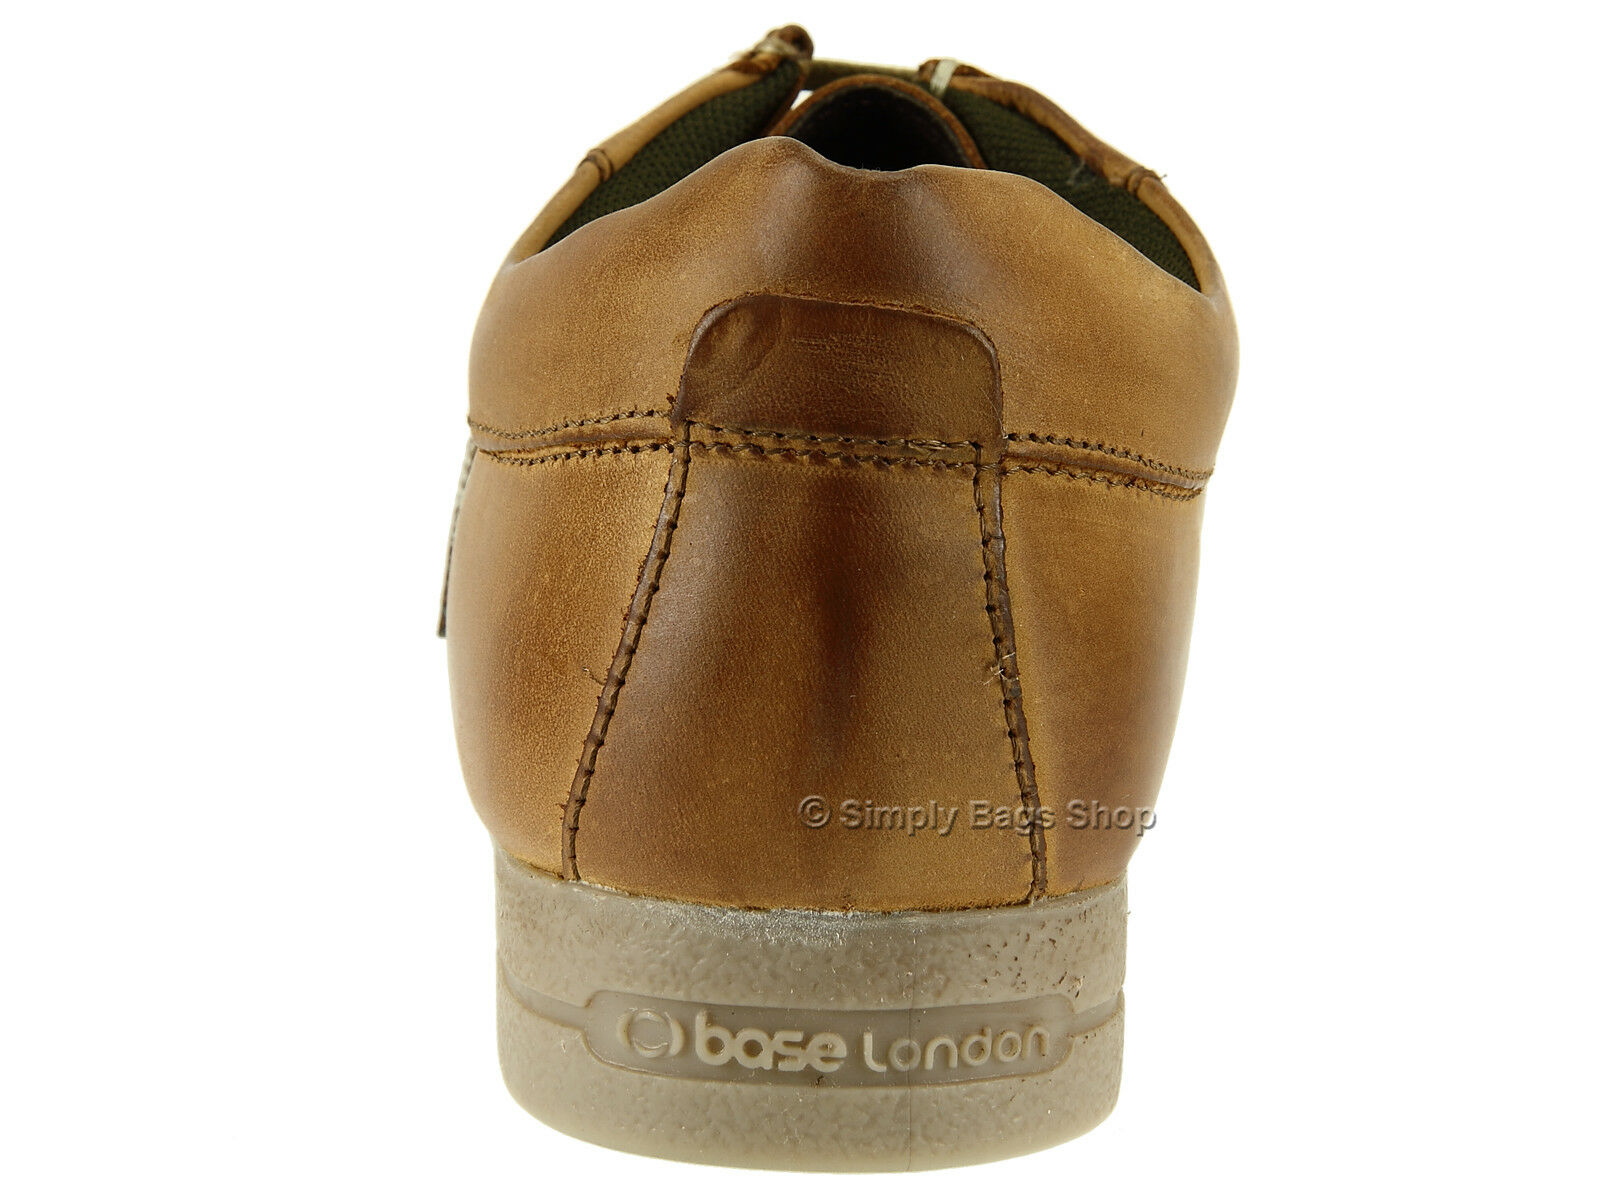 Base London   Herren Soft Leder Comfortable Casual Schuhes Schuhes Casual With Gripping Rubber Sole 9b1bc1